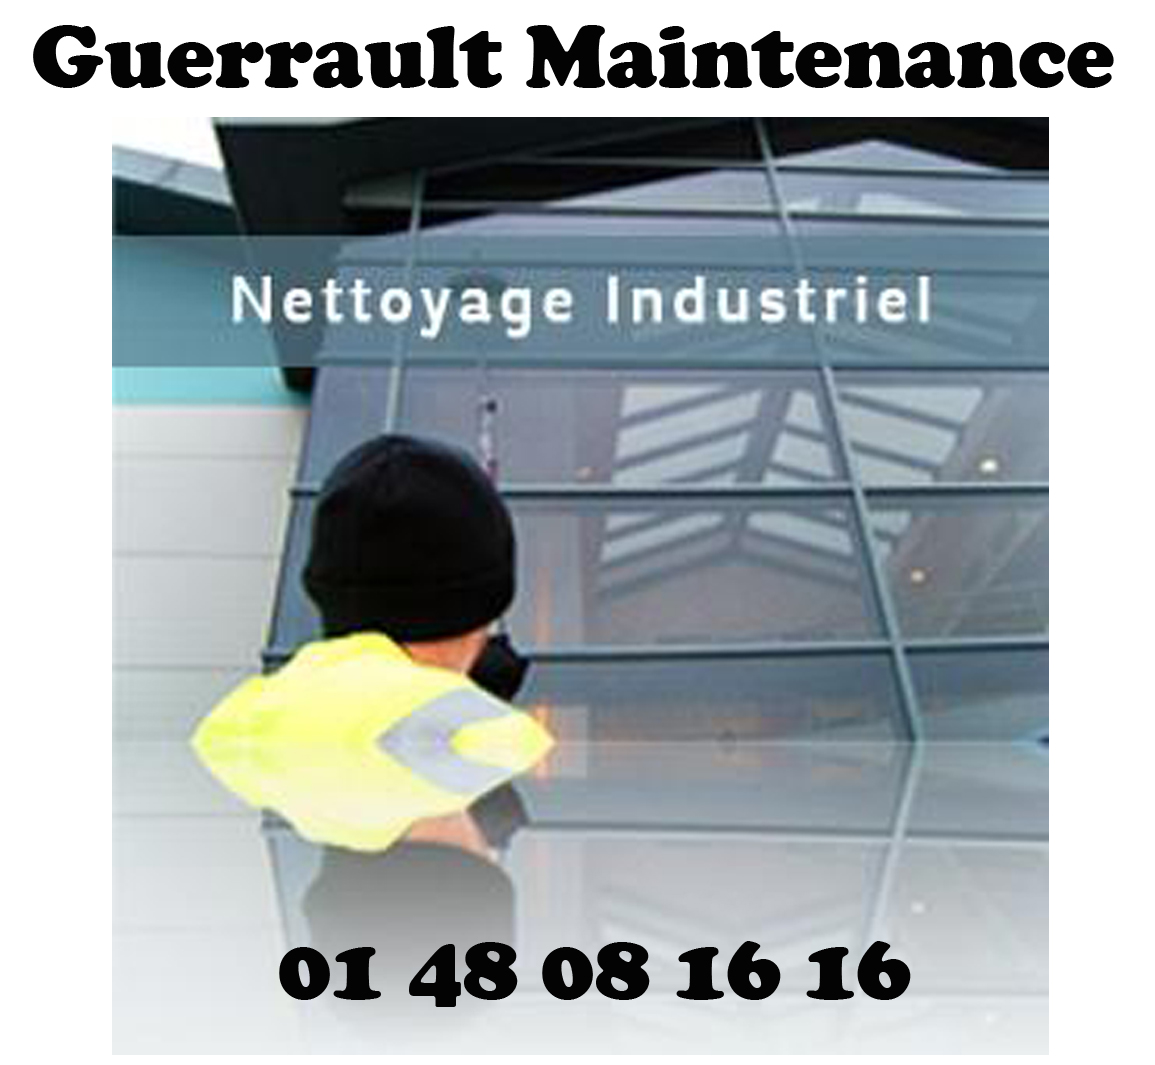 GUERRAULT Maintenance2